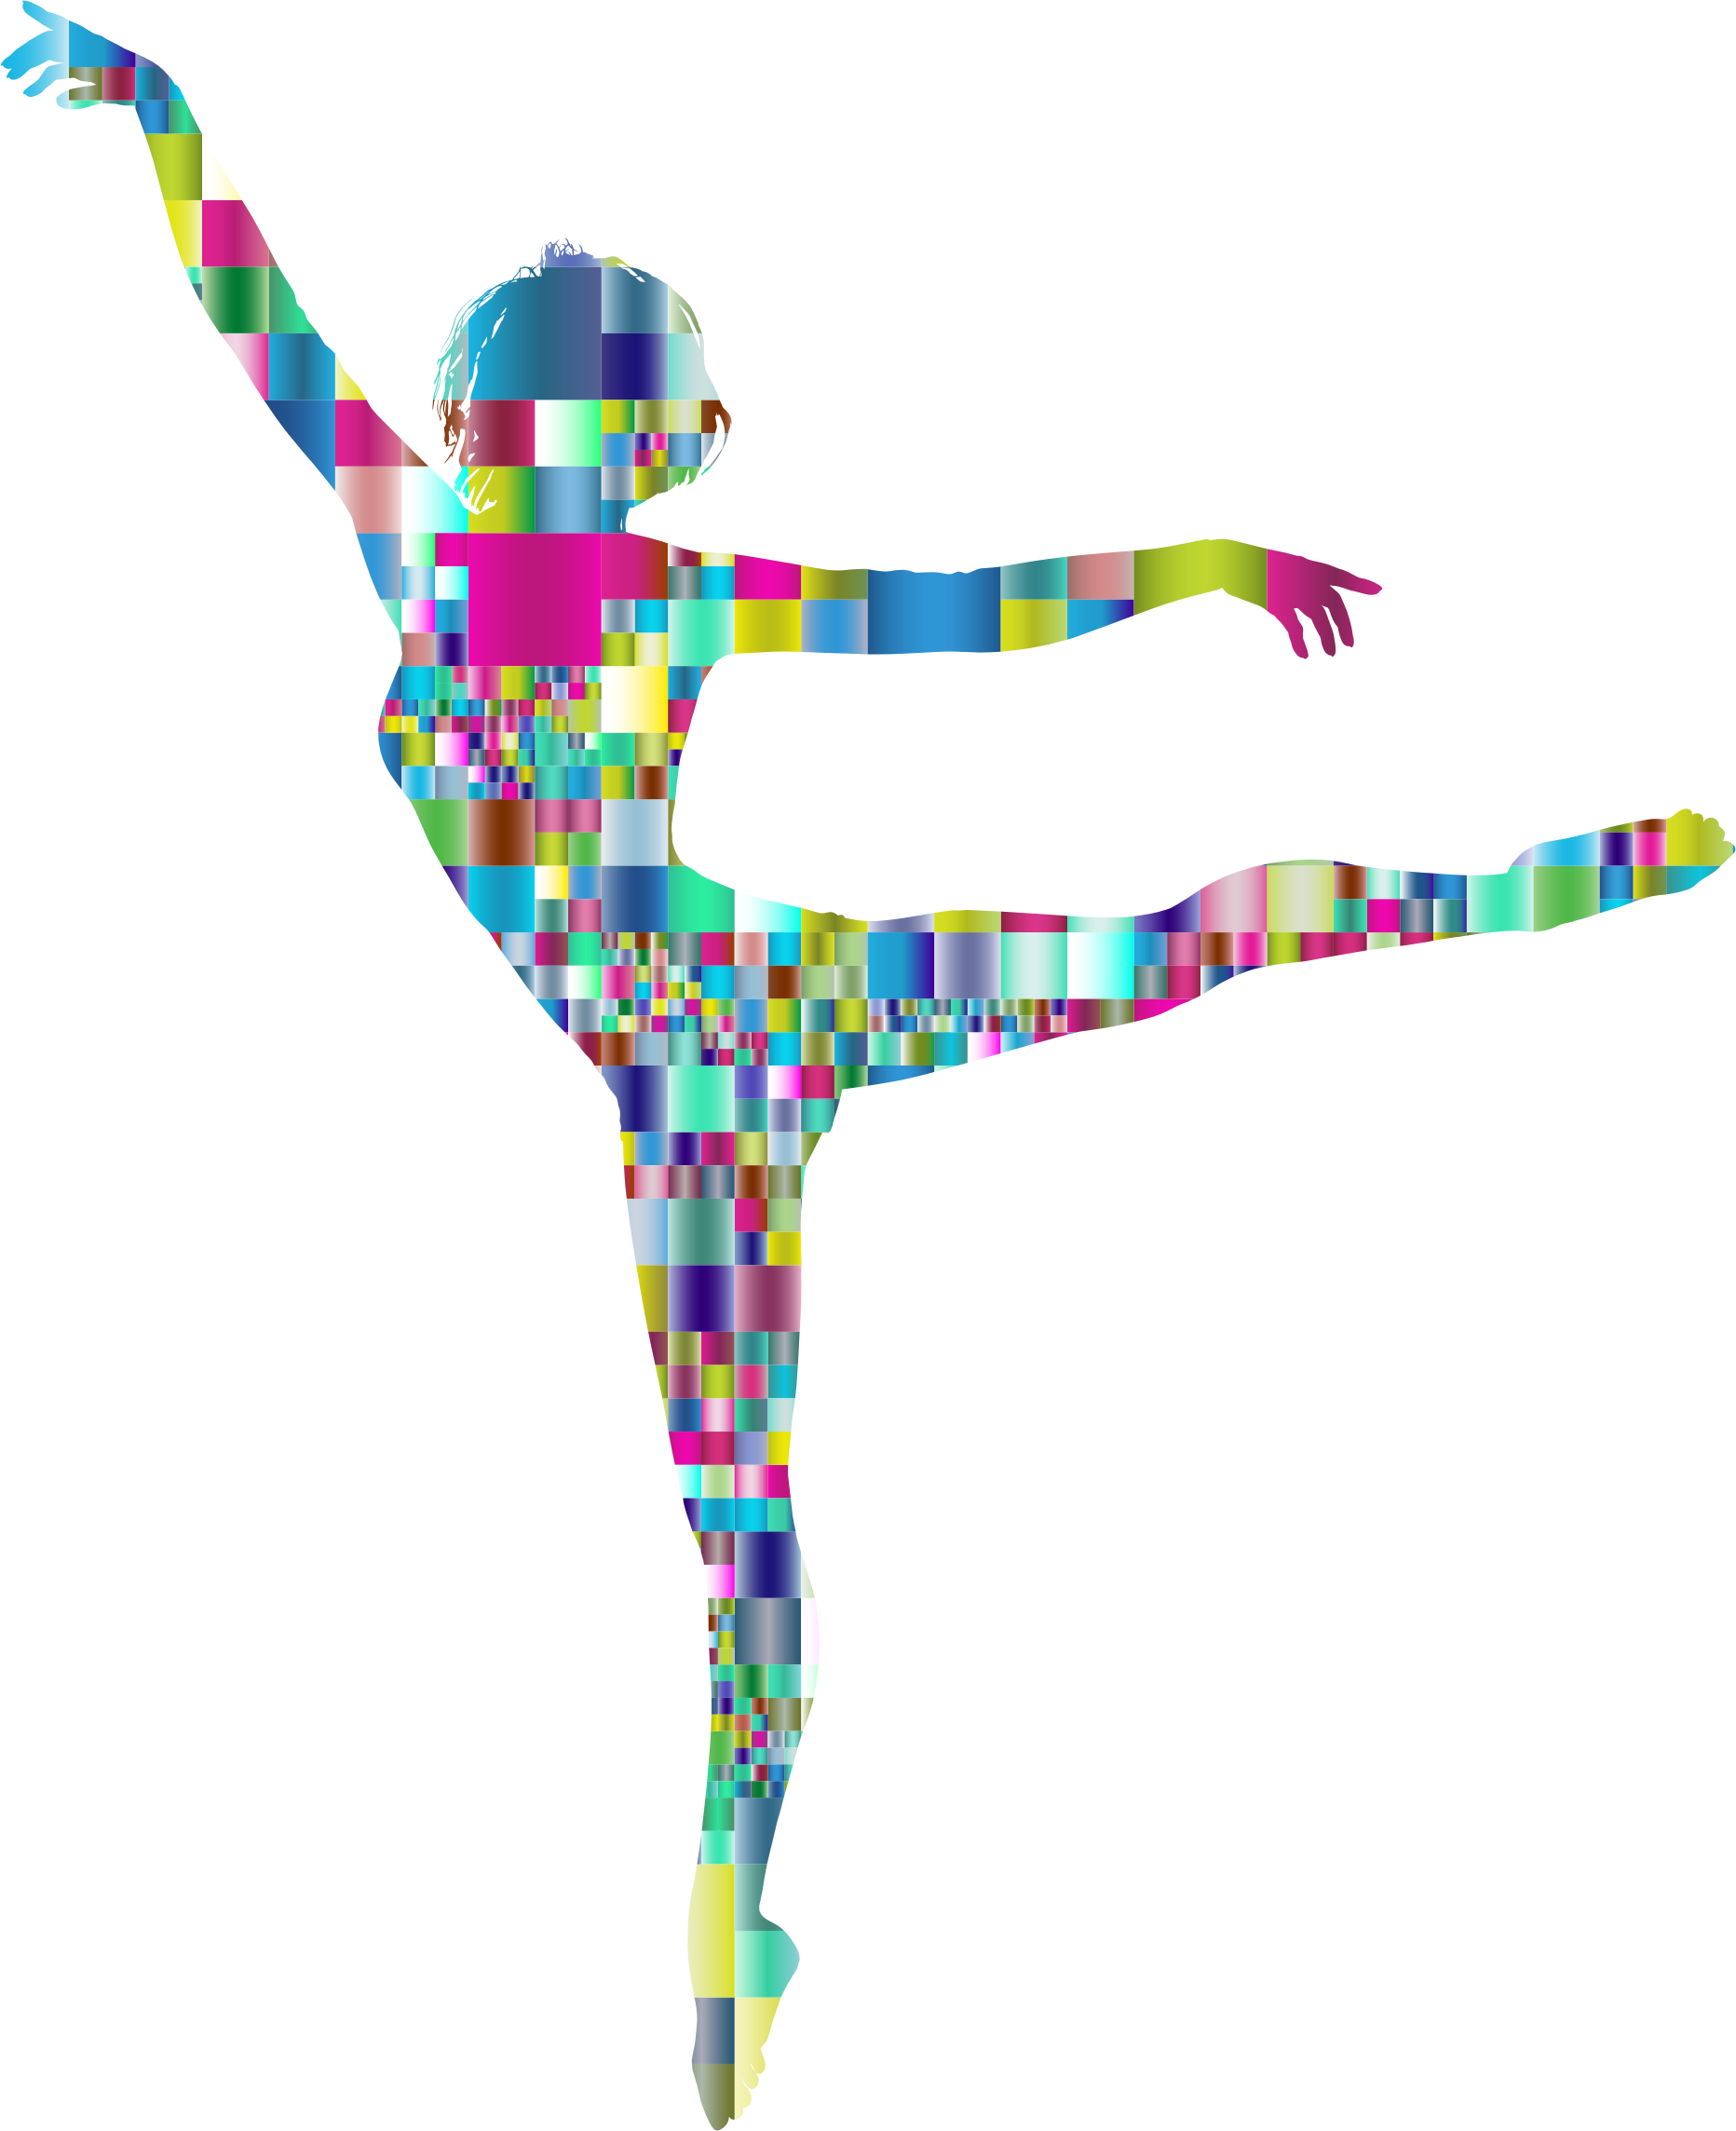 Prismatic Mosaic Lithe Dancing Woman Silhouette by GDJ